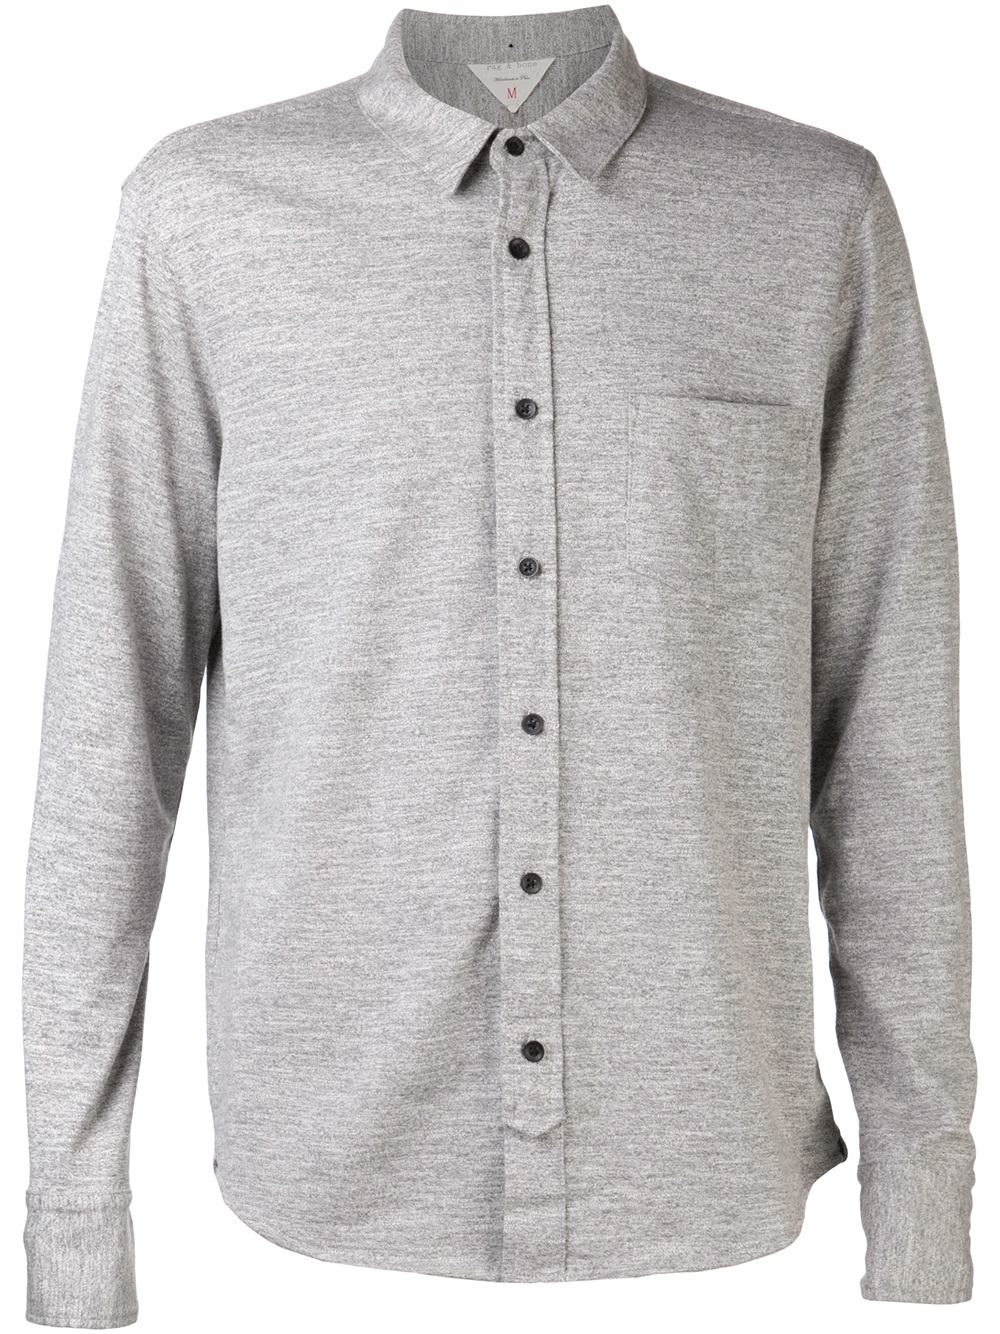 Mens grey button up shirt is shirt for Button up mens shirt